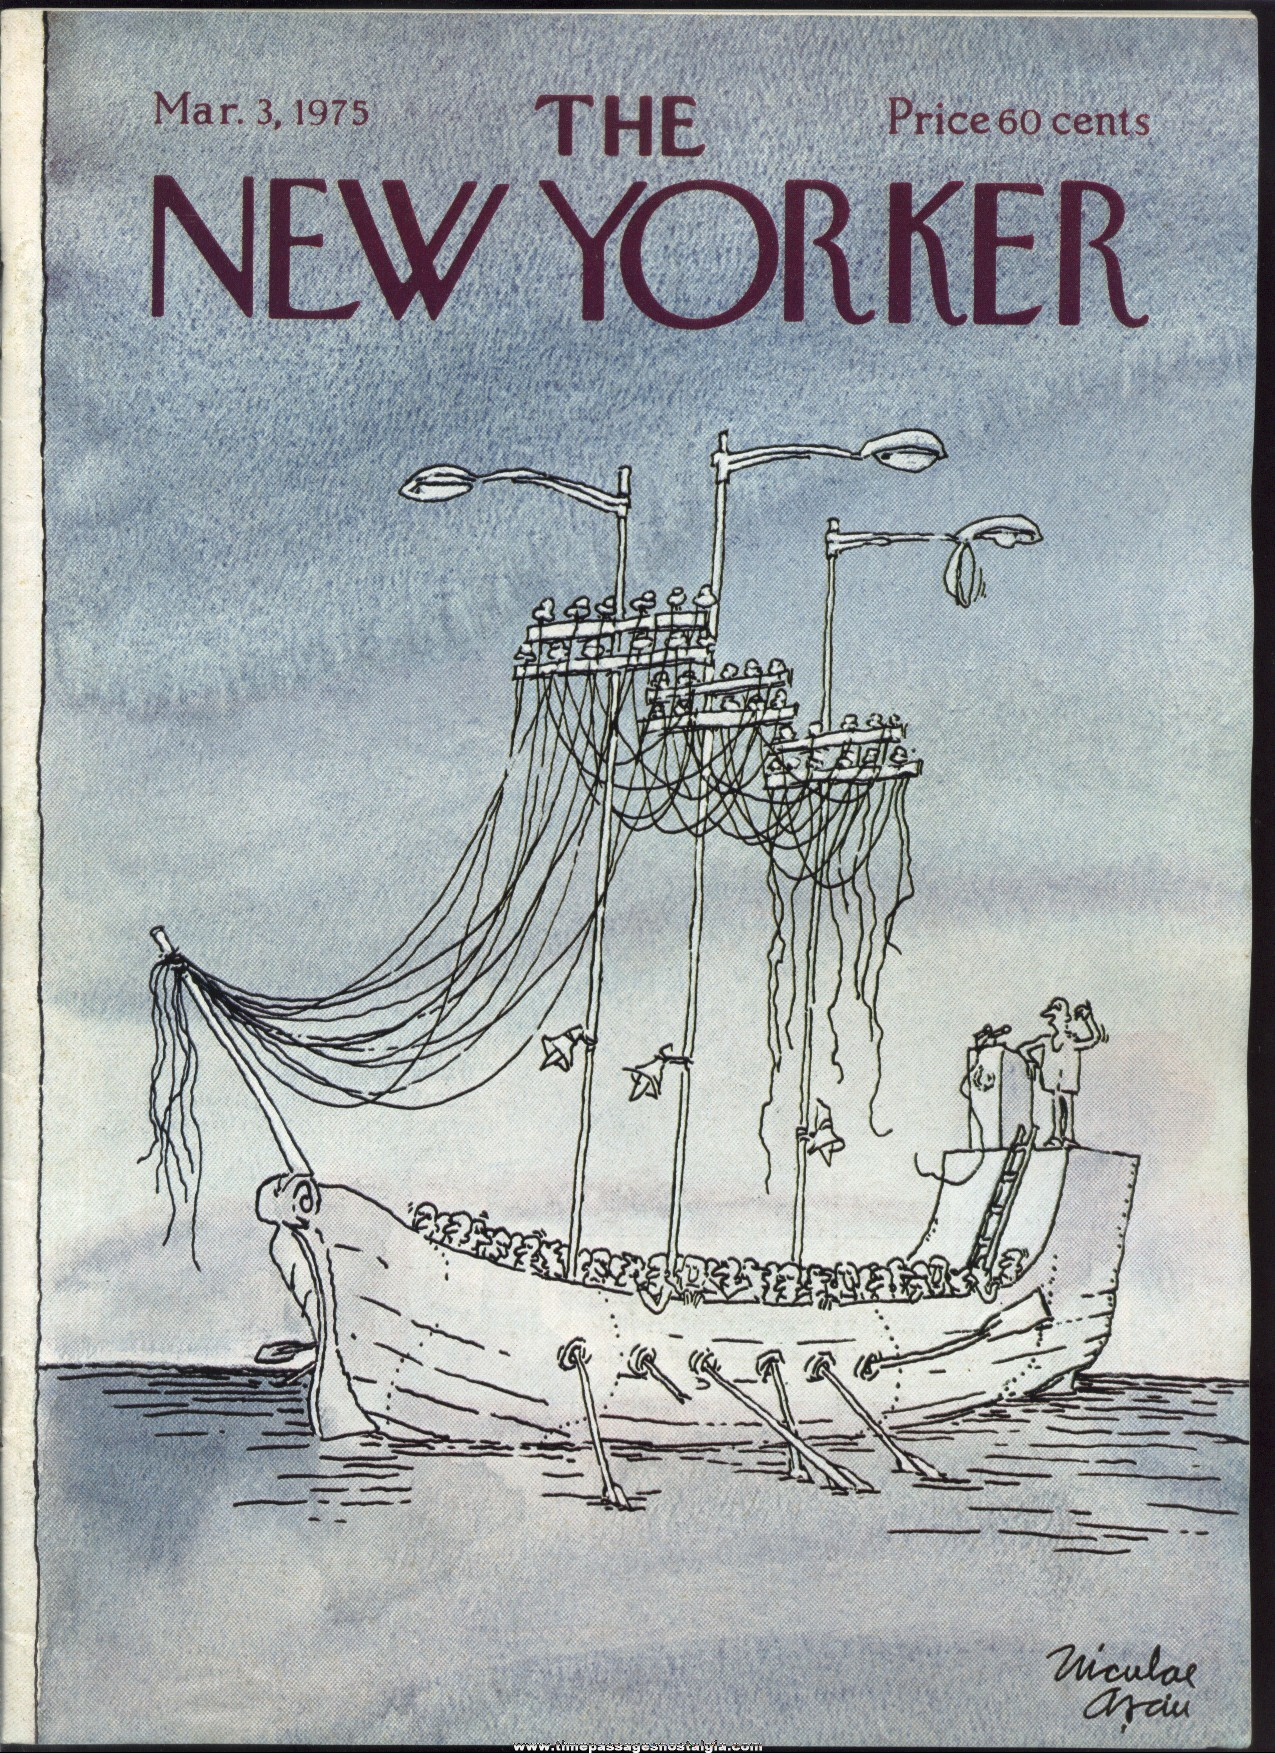 New Yorker Magazine - March 3, 1975 - Cover by Niculae Asciu